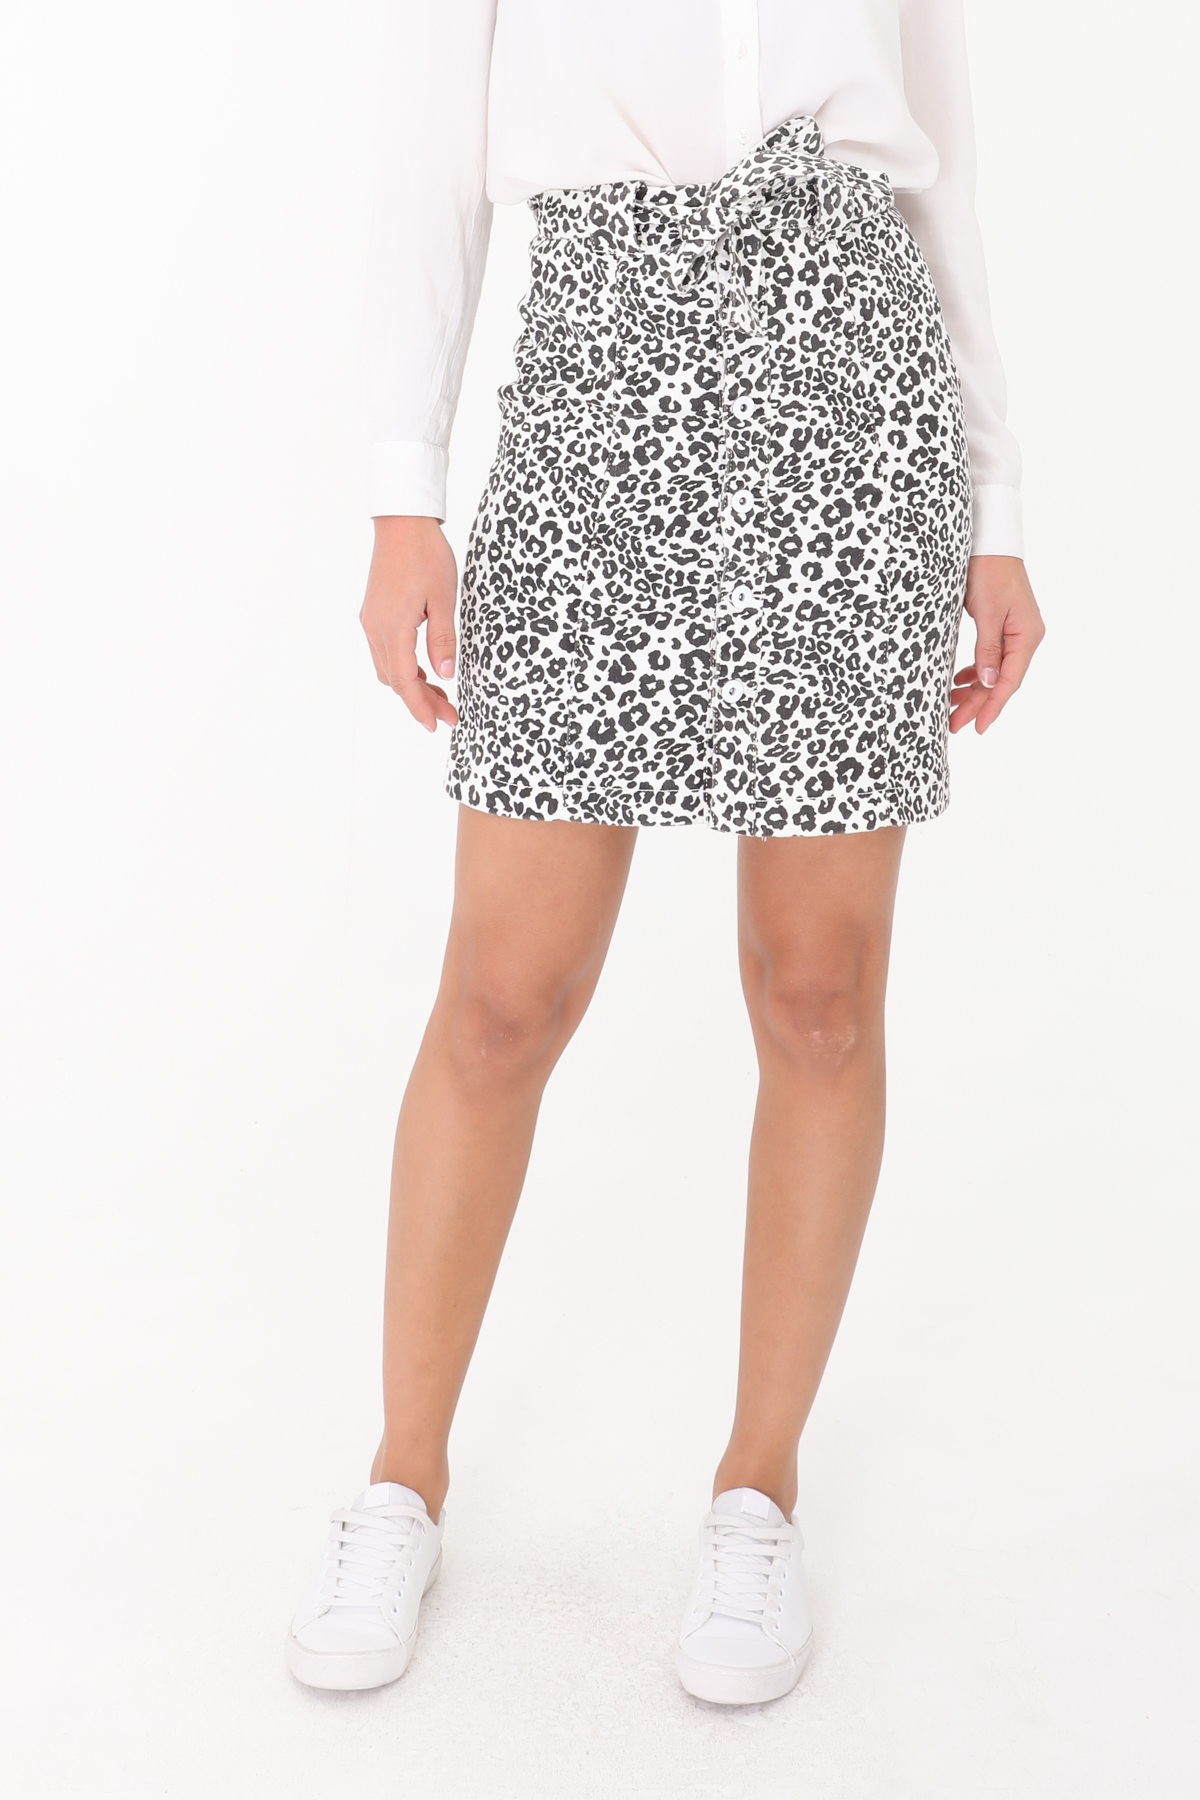 Jupes Femme Blanc Toxik3 C2042 #c eFashion Paris